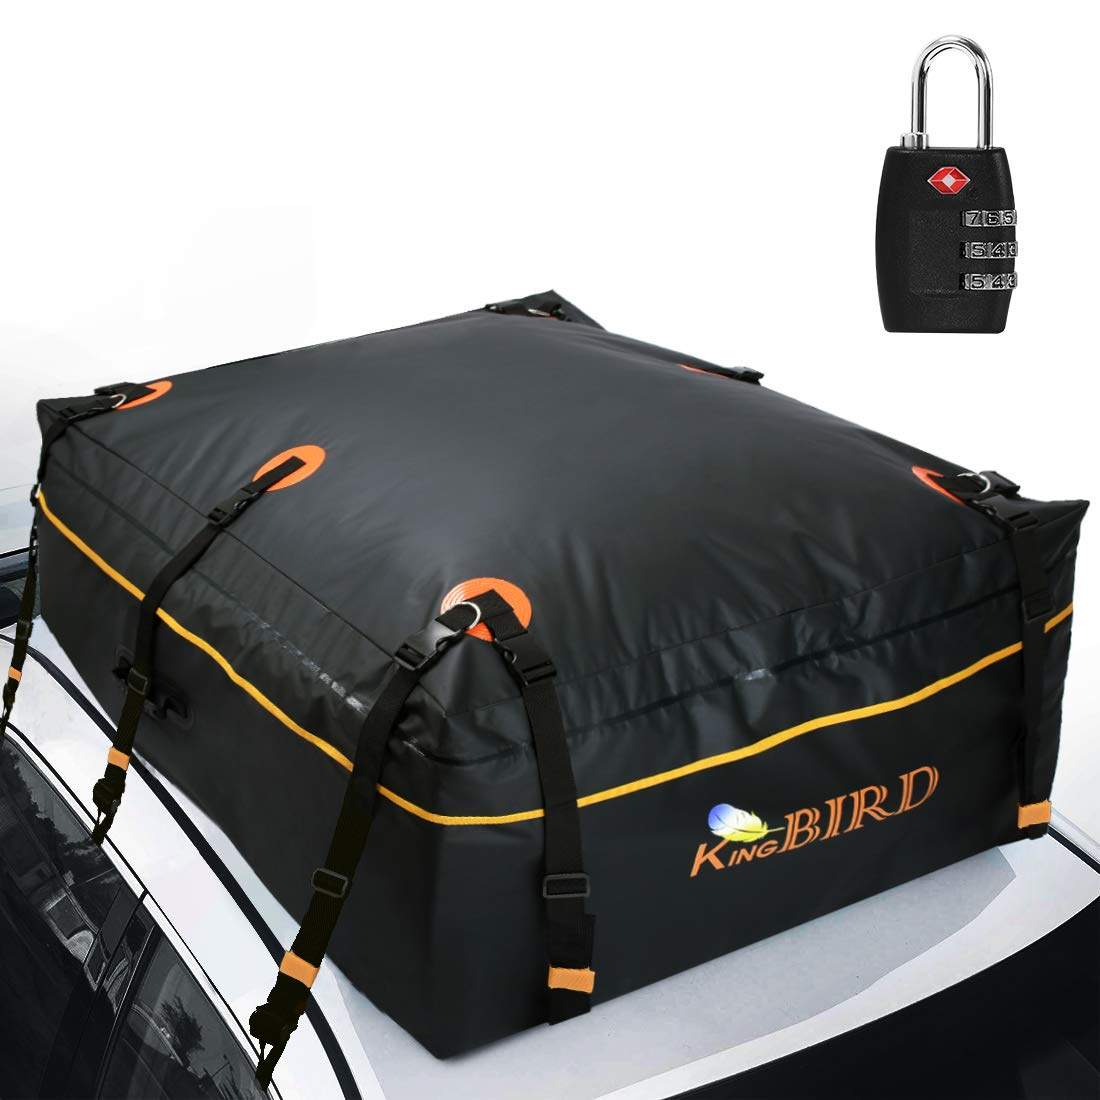 KING BIRD 2019 Upgraded 100% Waterproof Roof Bag with External Non-Slip Mats, 20 Cubic Feet Heavy Duty Car Top Cargo Carrier with Built-in Protective Mat Fits All Cars with/Without Rack by KING BIRD